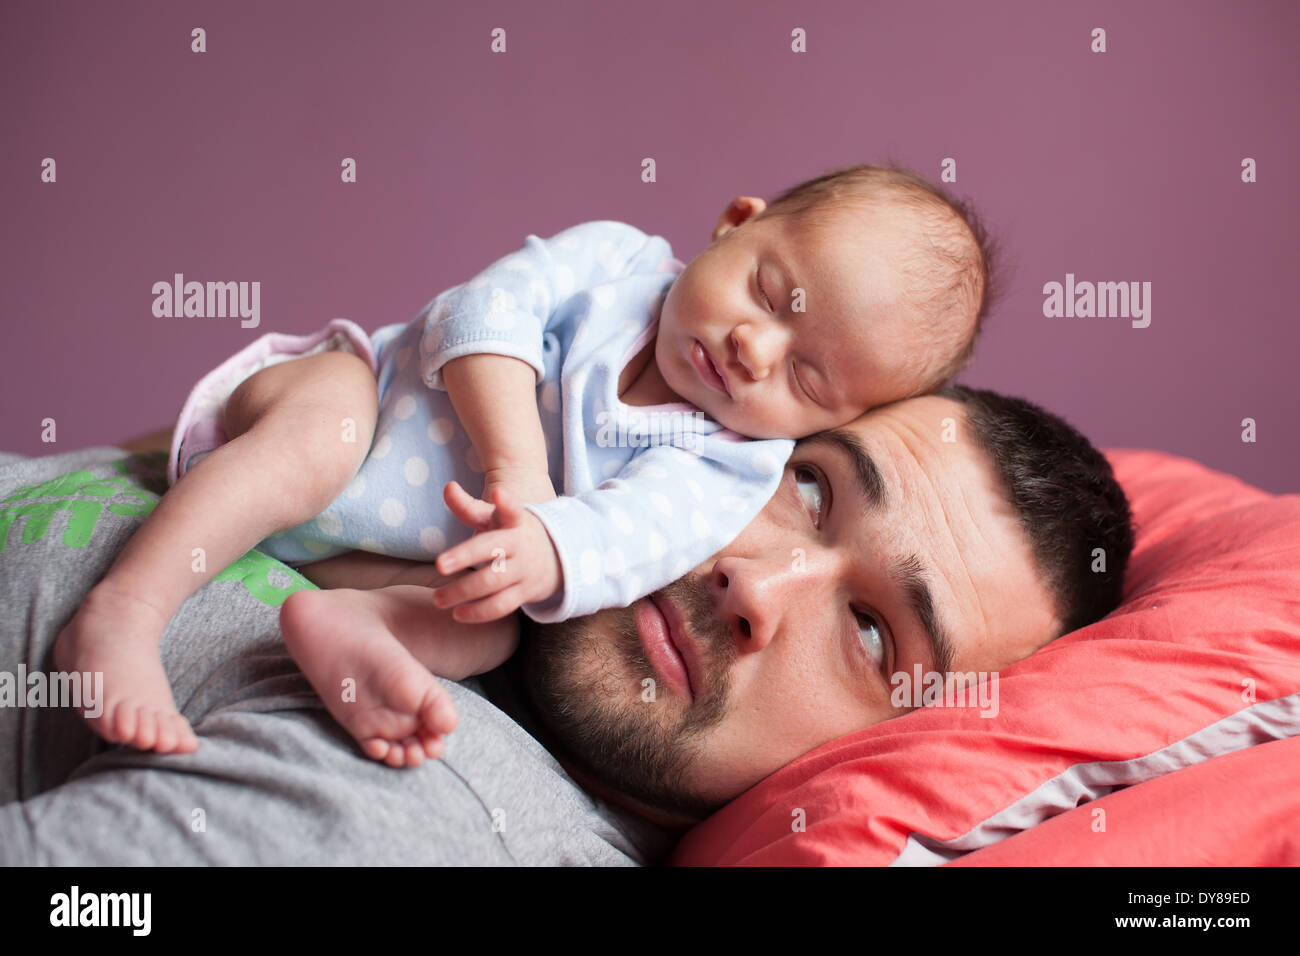 Newborn baby sleeping with father - Stock Image